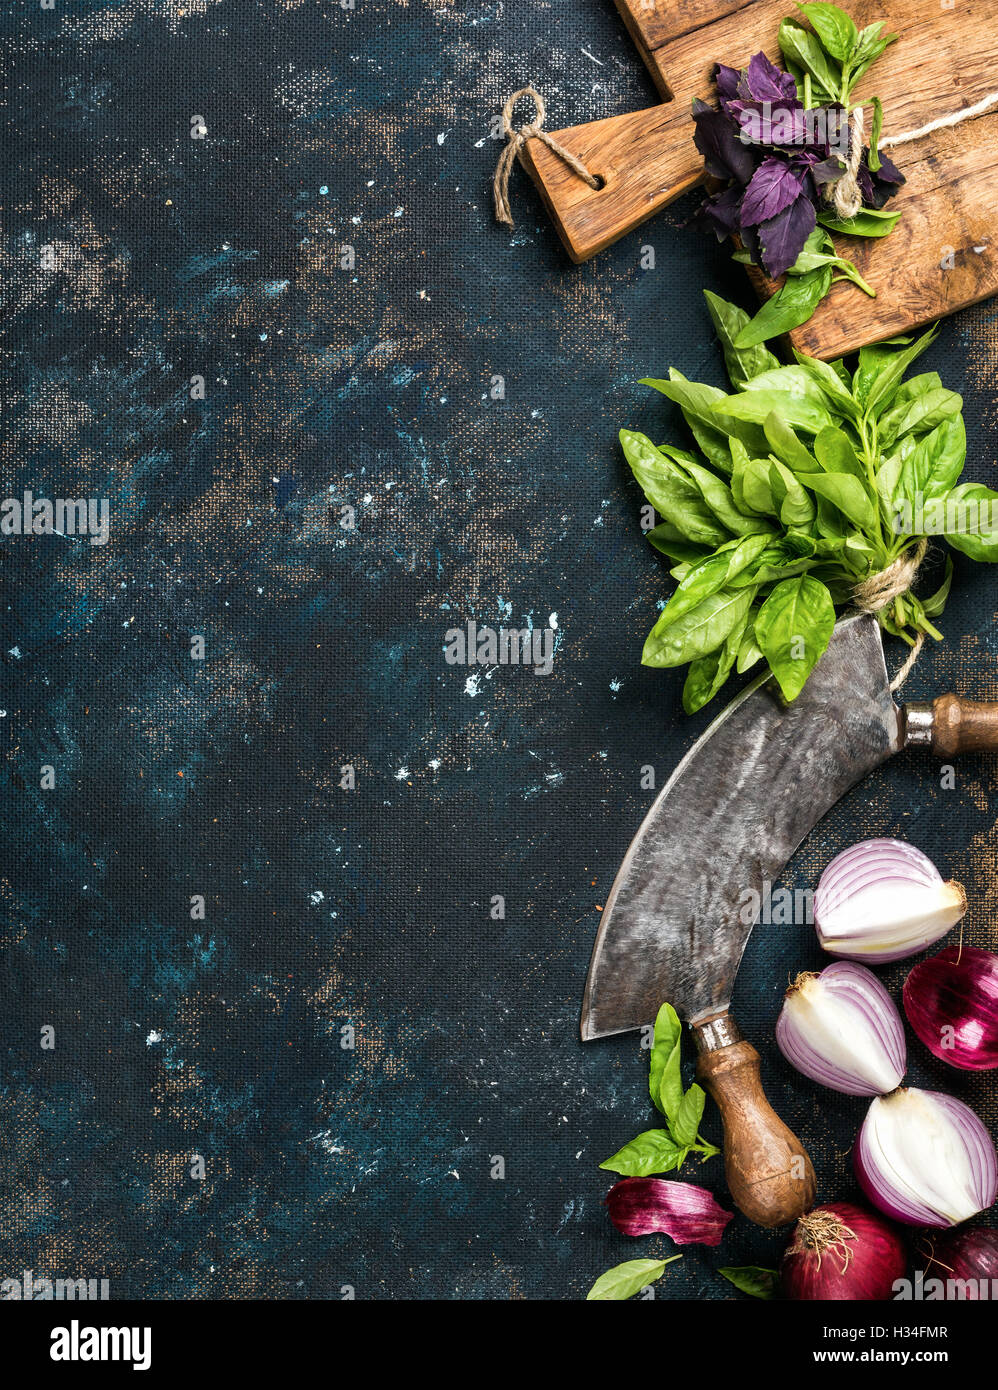 Healthy food cooking background over grunge dark blue plywood texture - Stock Image